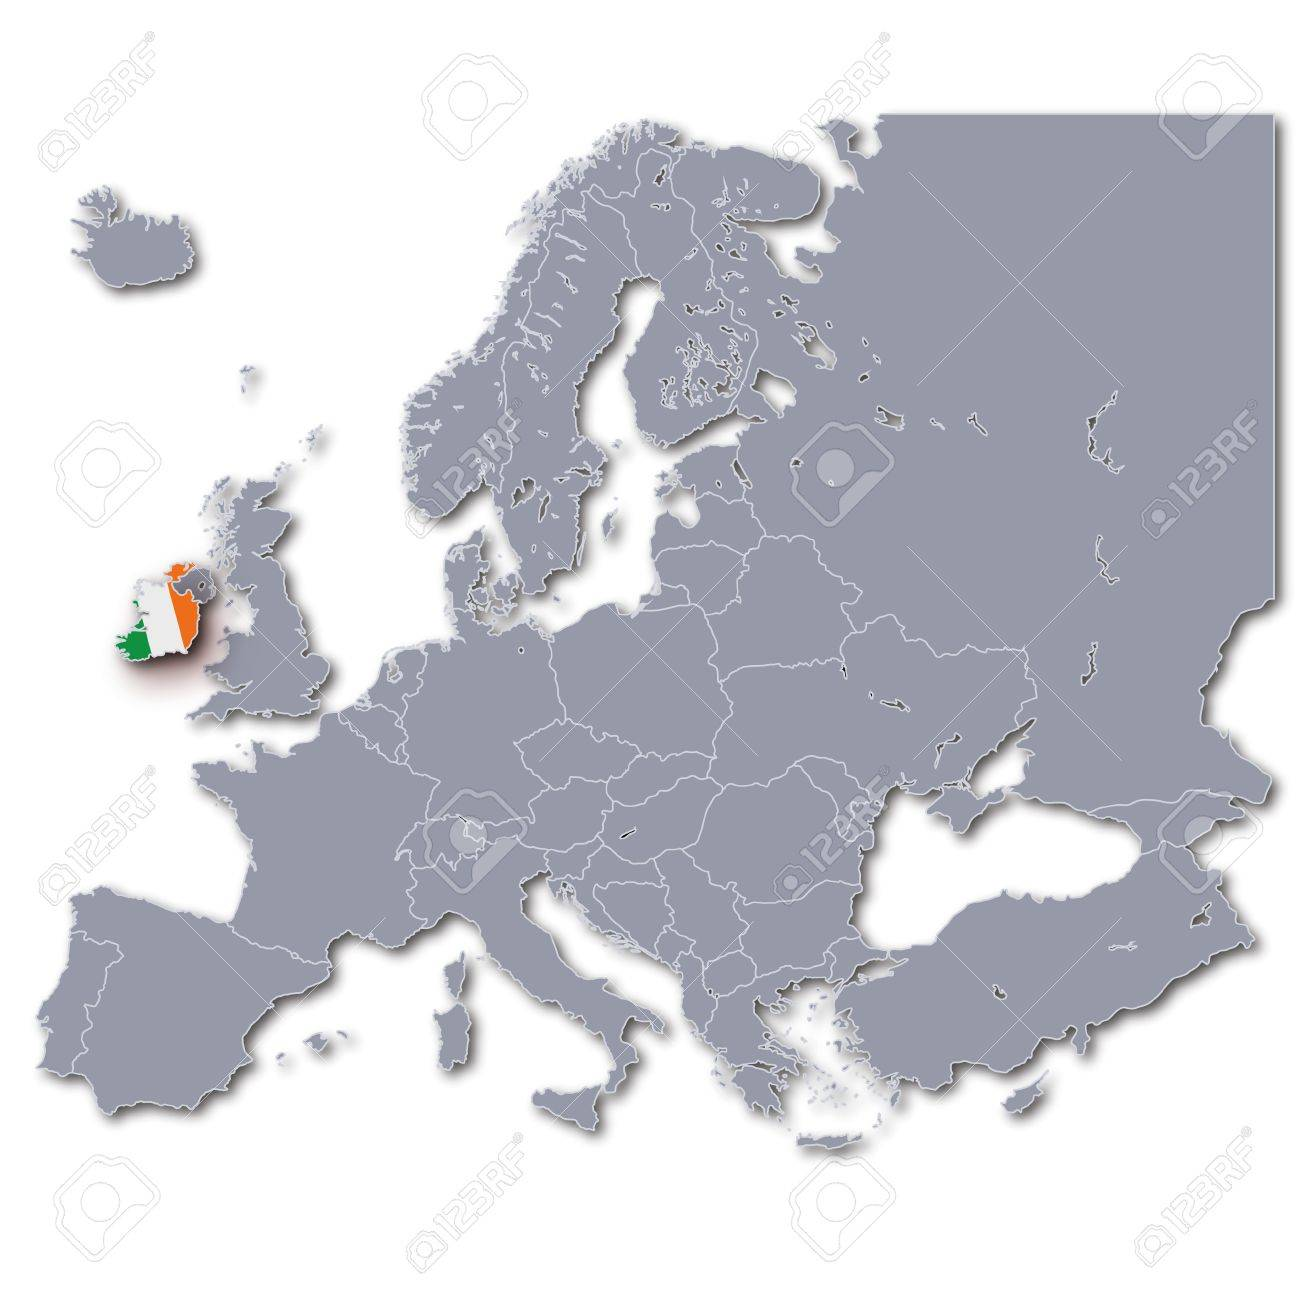 Europe Map Ireland Stock Photo Picture And Royalty Free Image